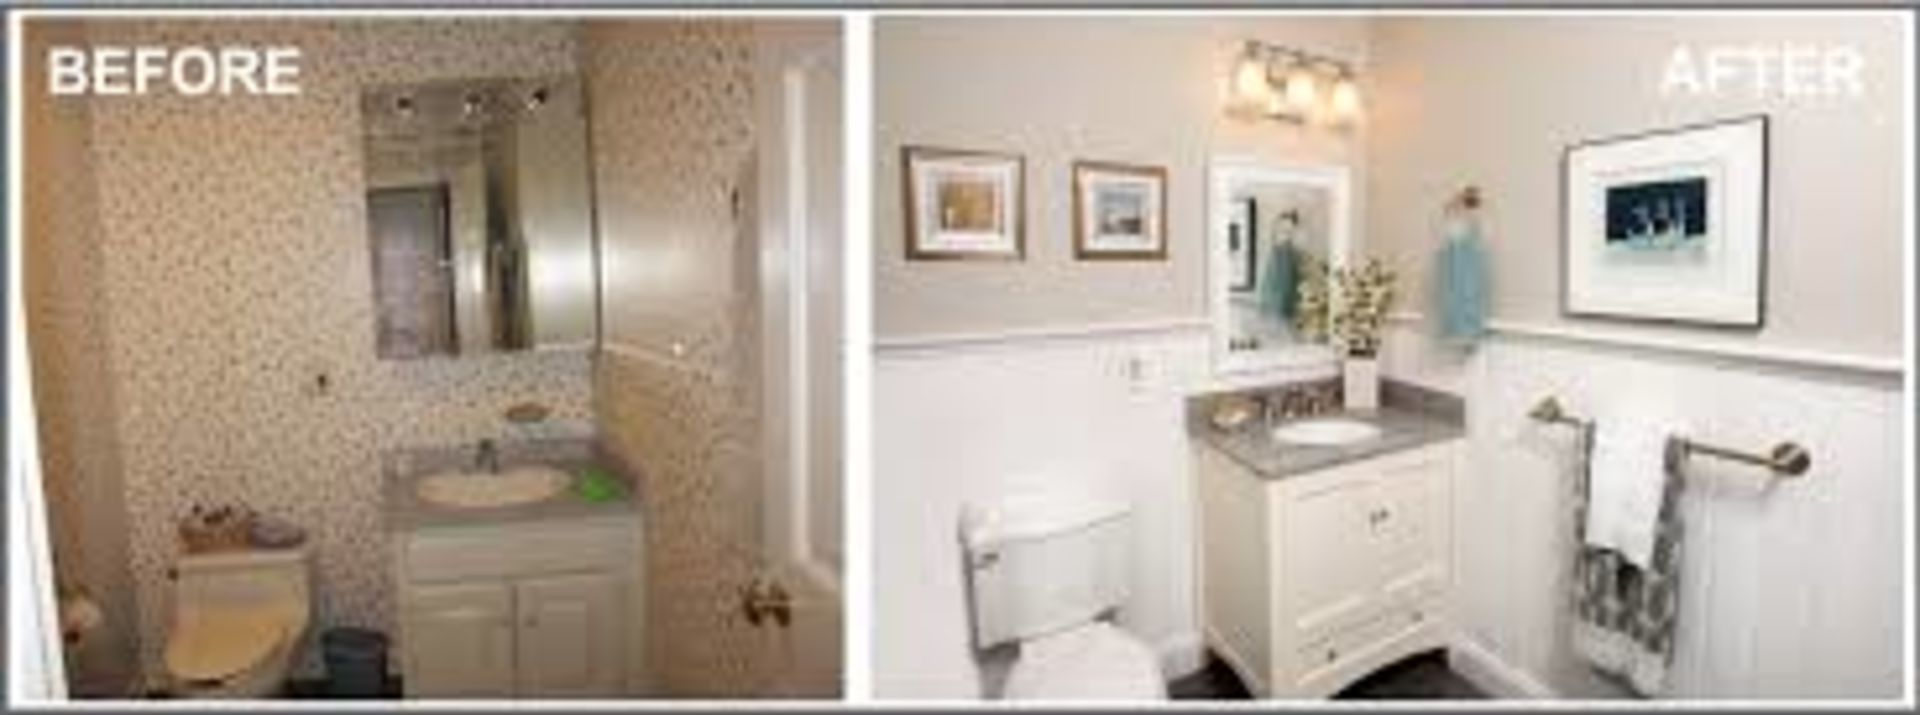 Home Staging Tips for Quick Sale – Bathrooms